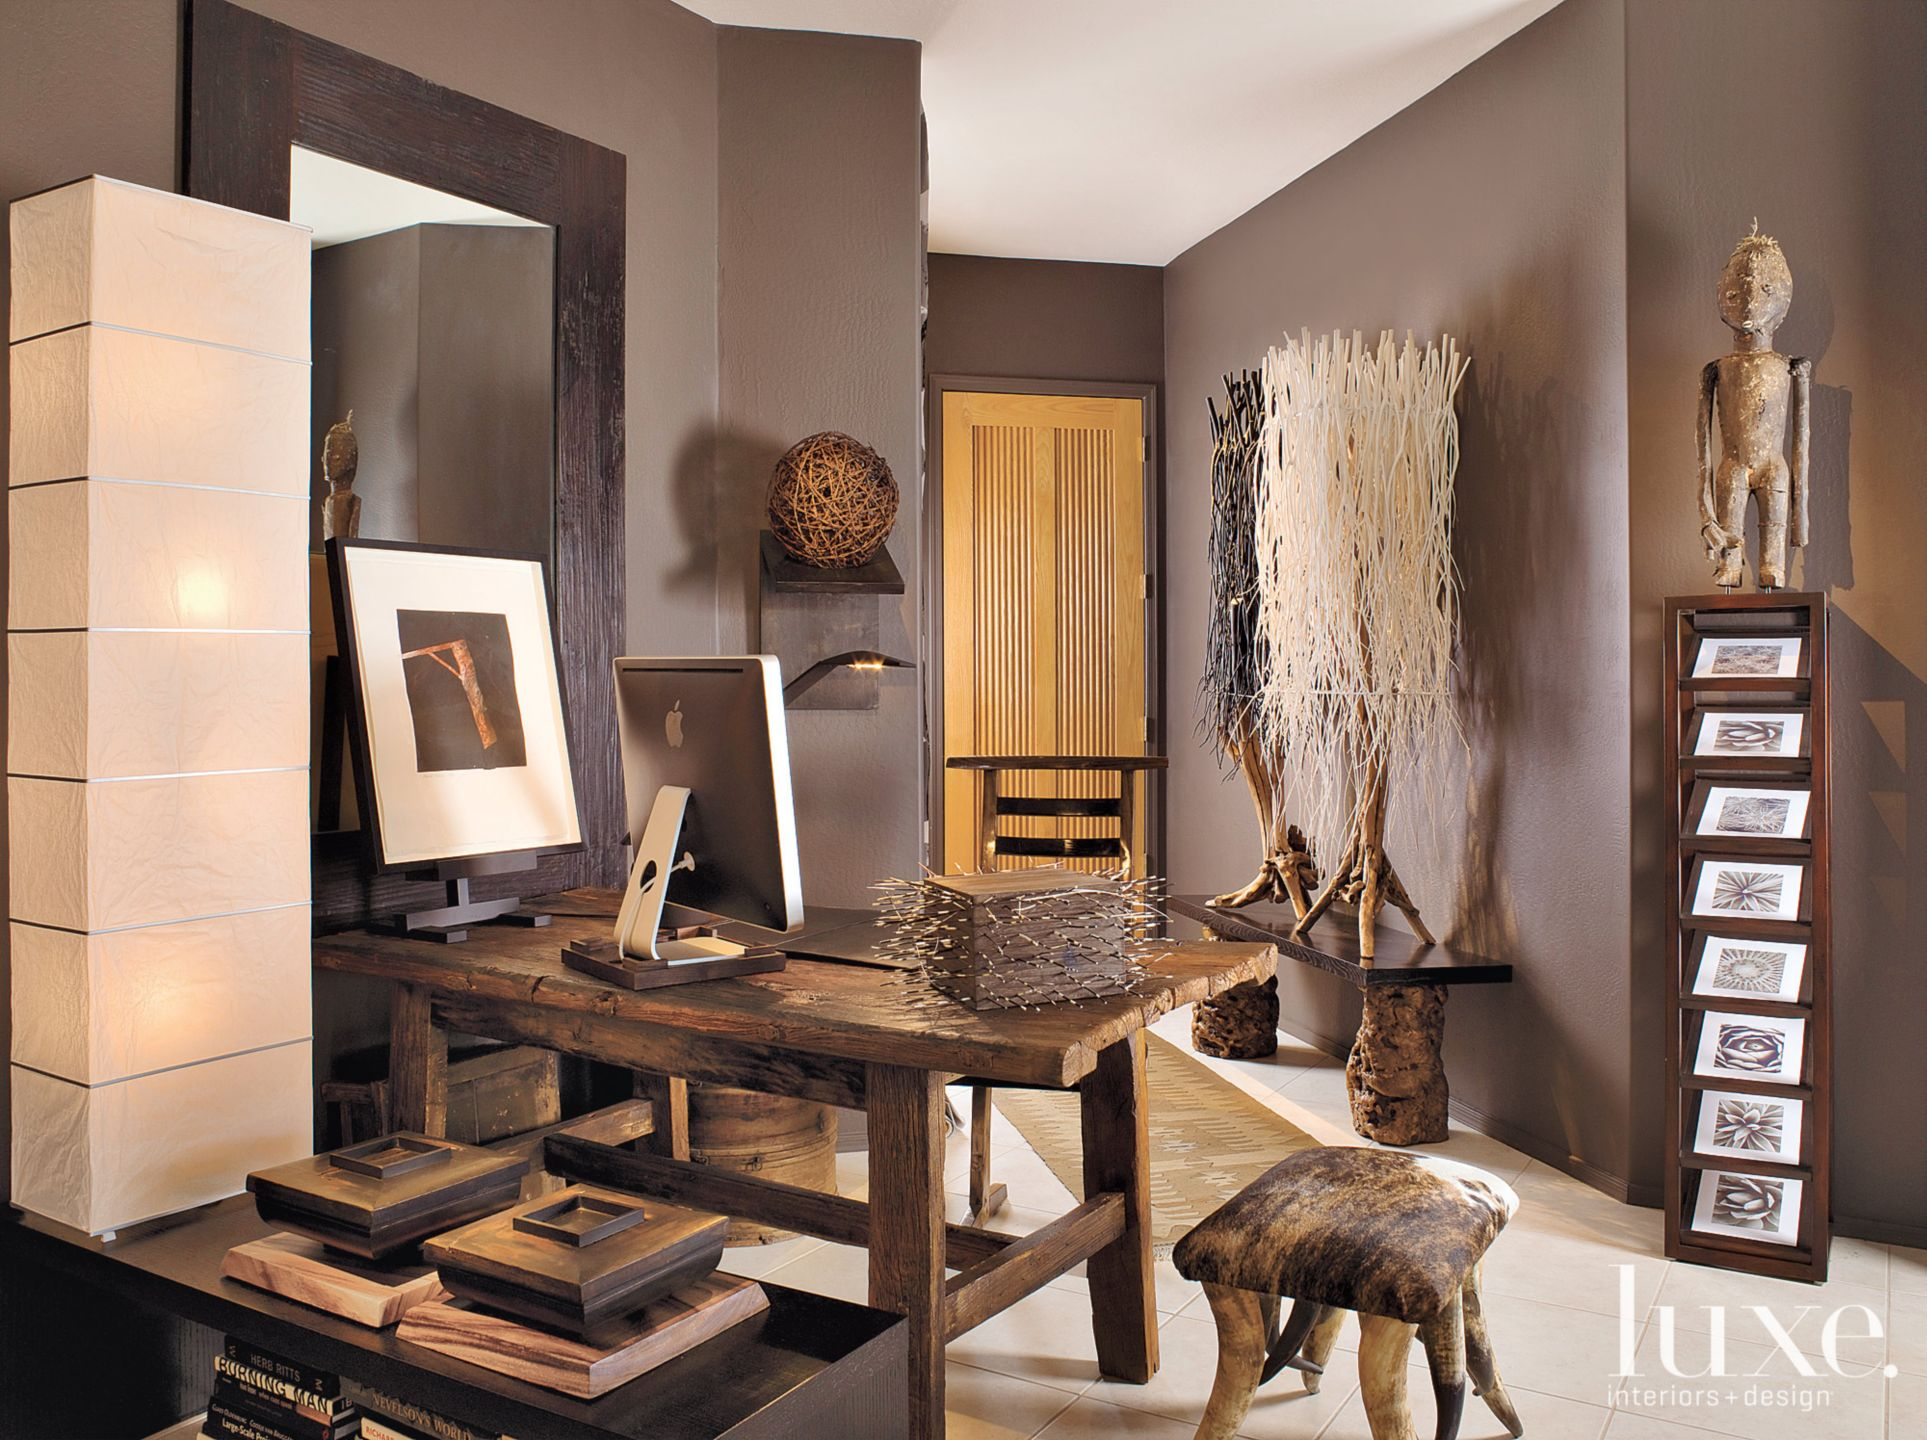 Eclectic Brown Studio with Twig-Like Sculptures